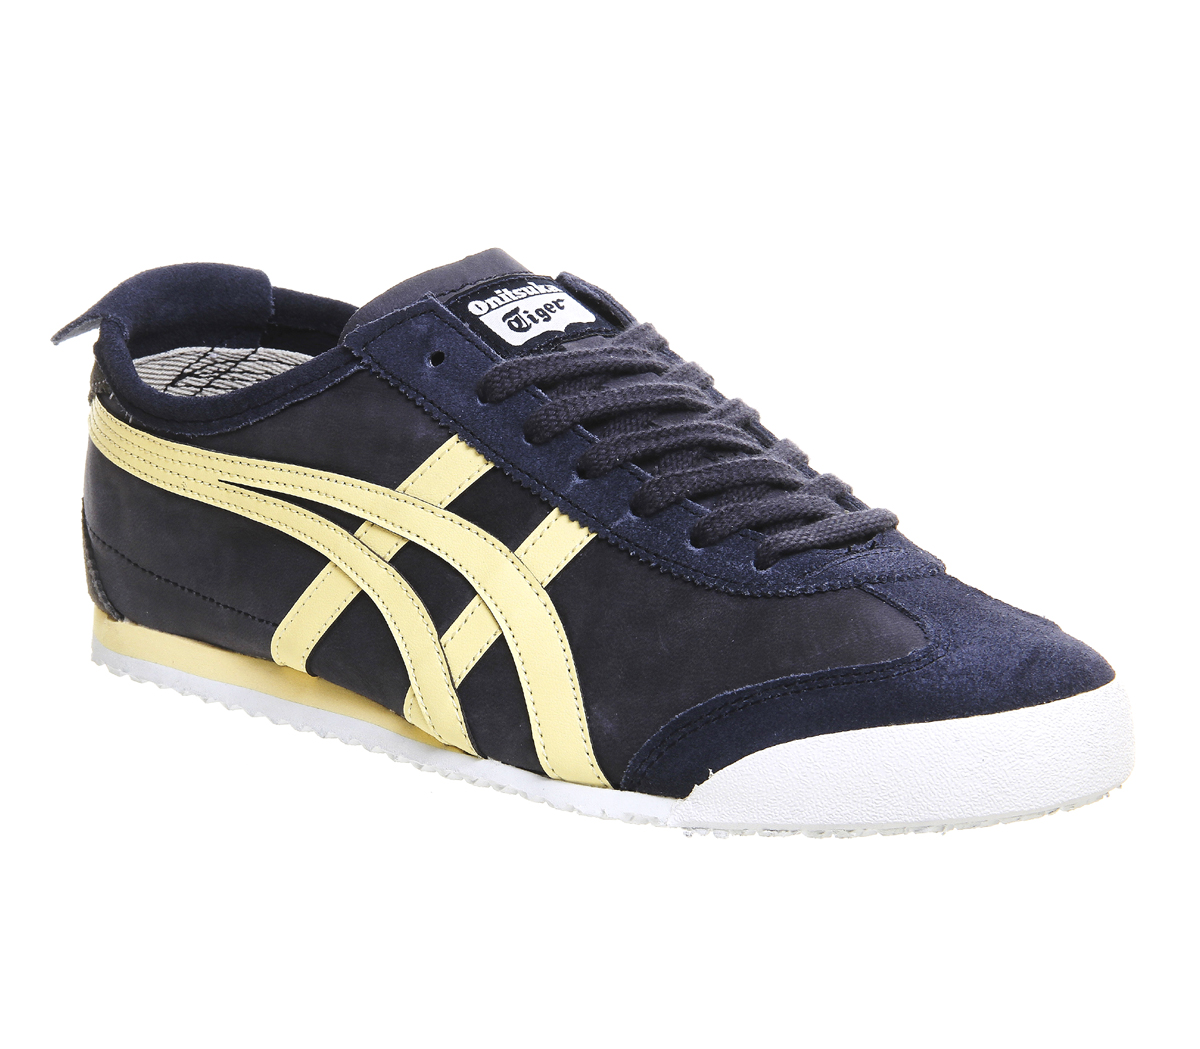 asics tiger sneakers india